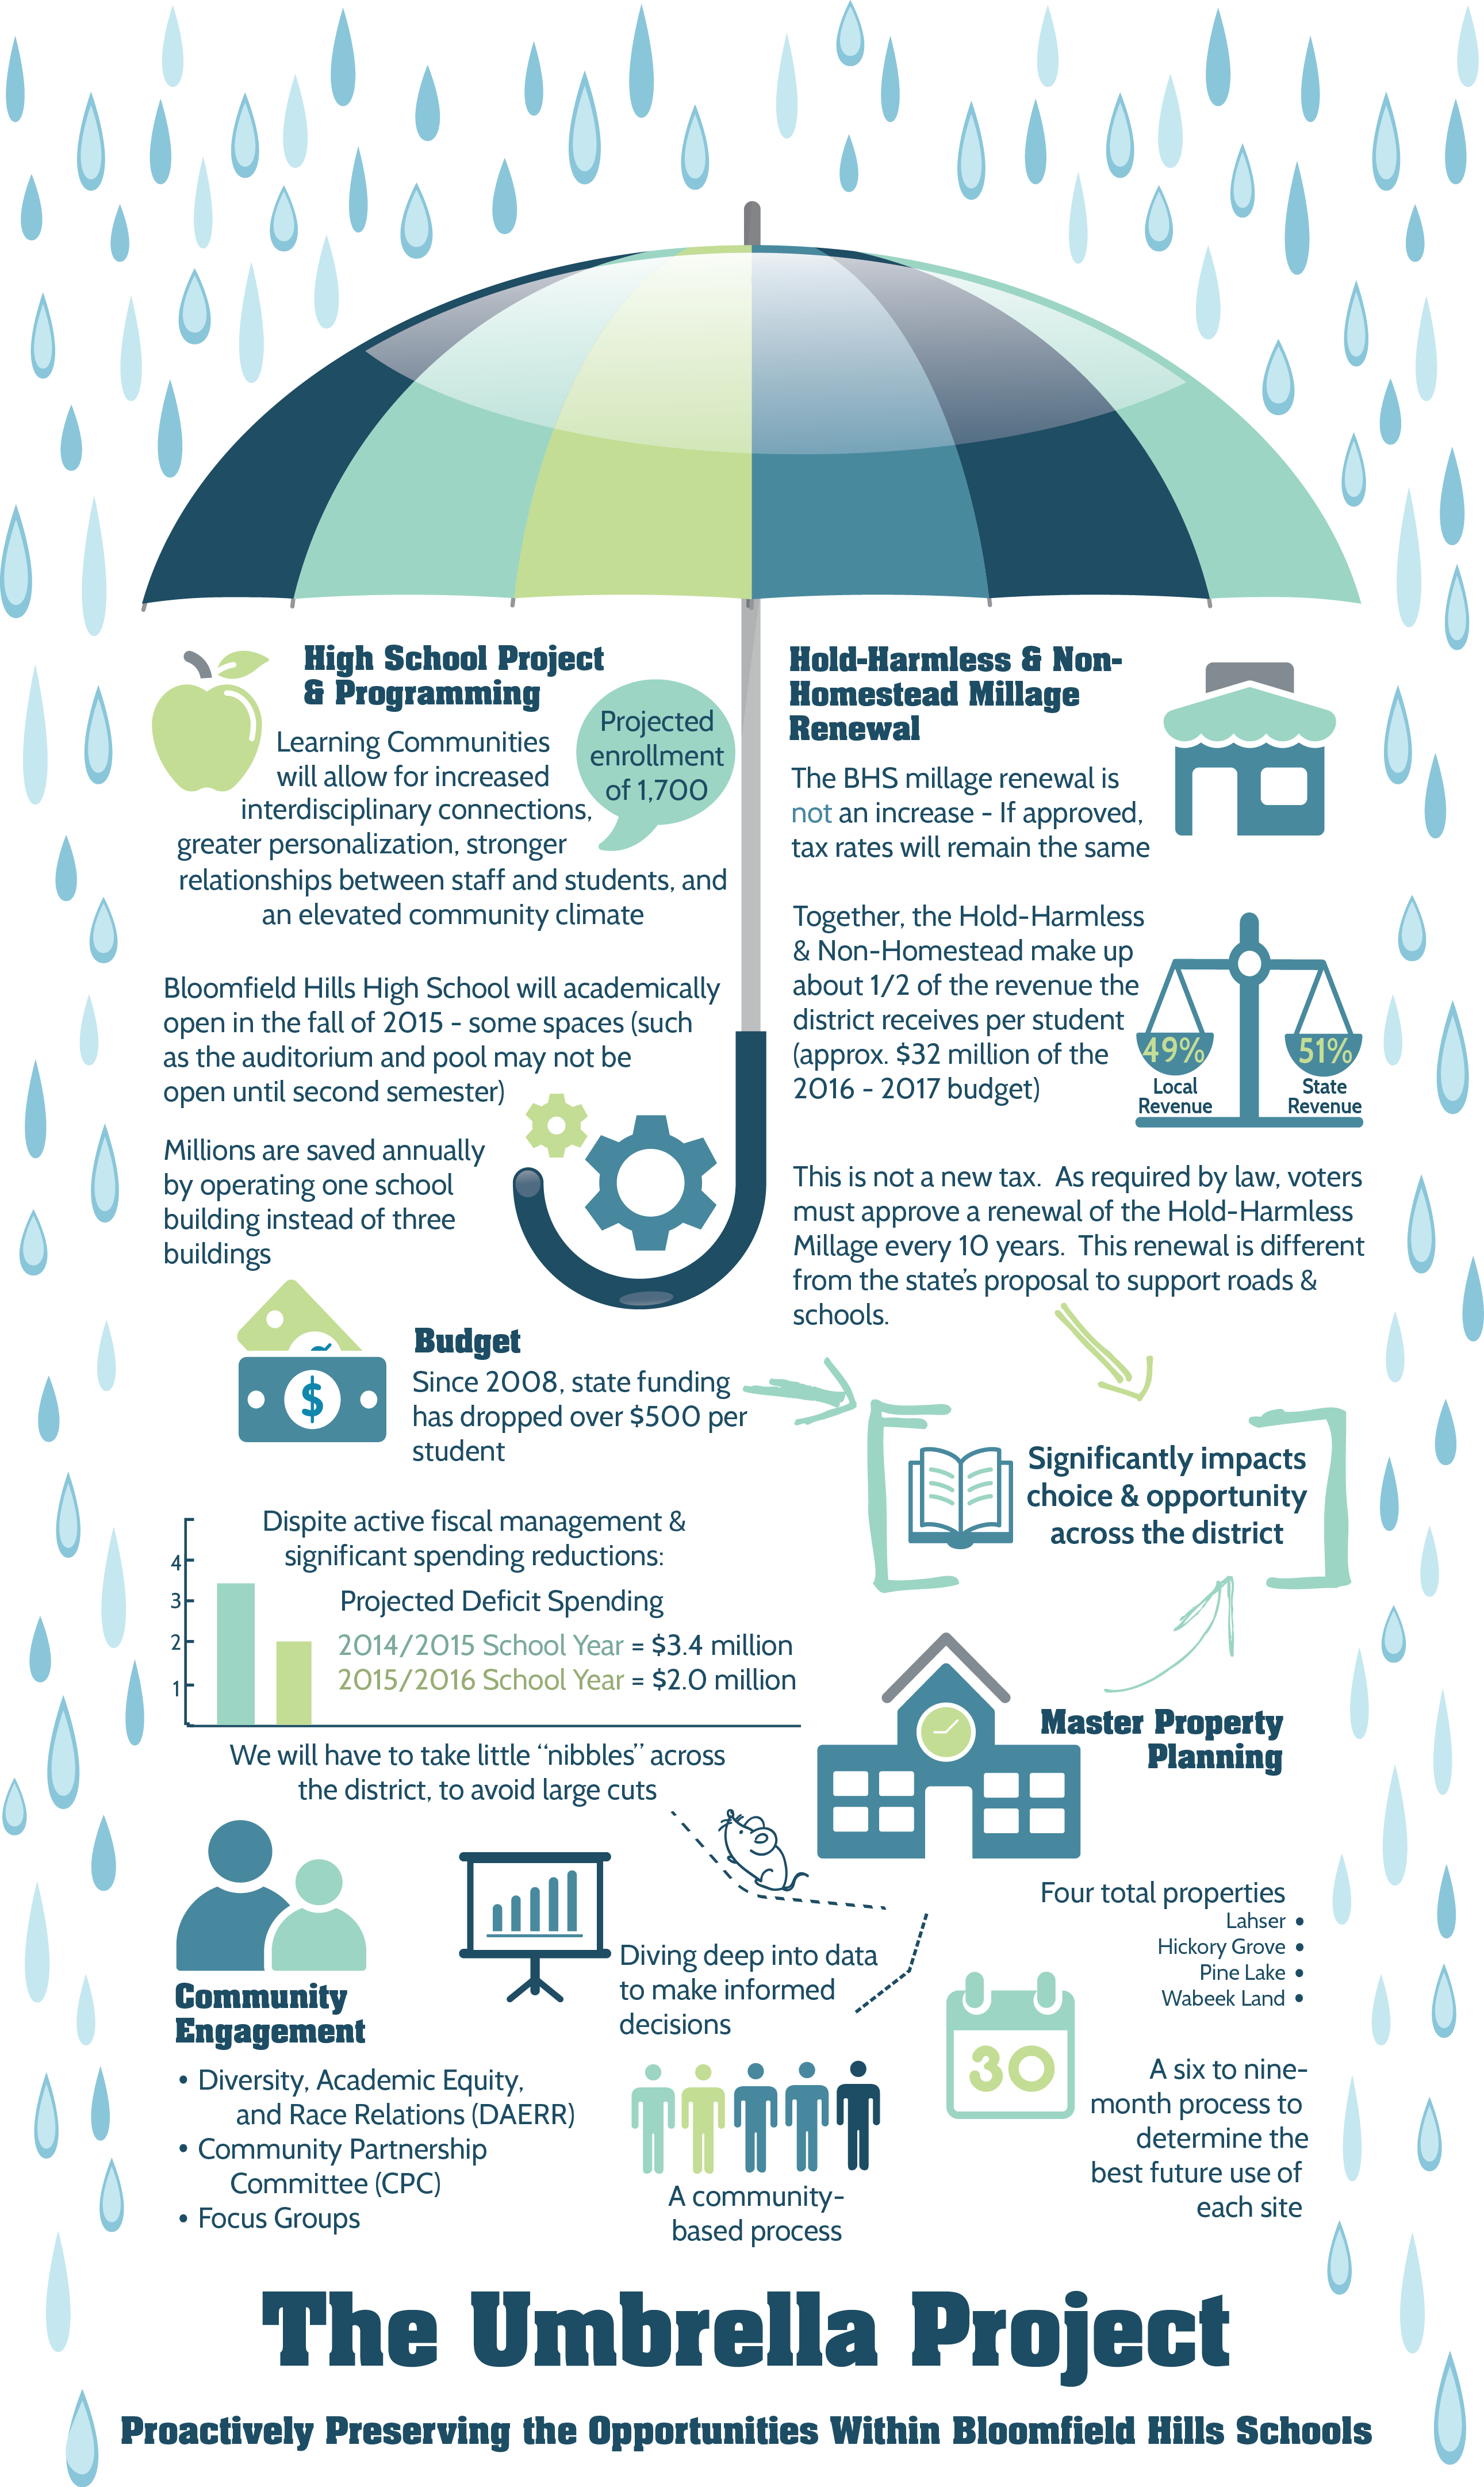 Infographic about Bloomfield Hills Schools' Umbrella Project